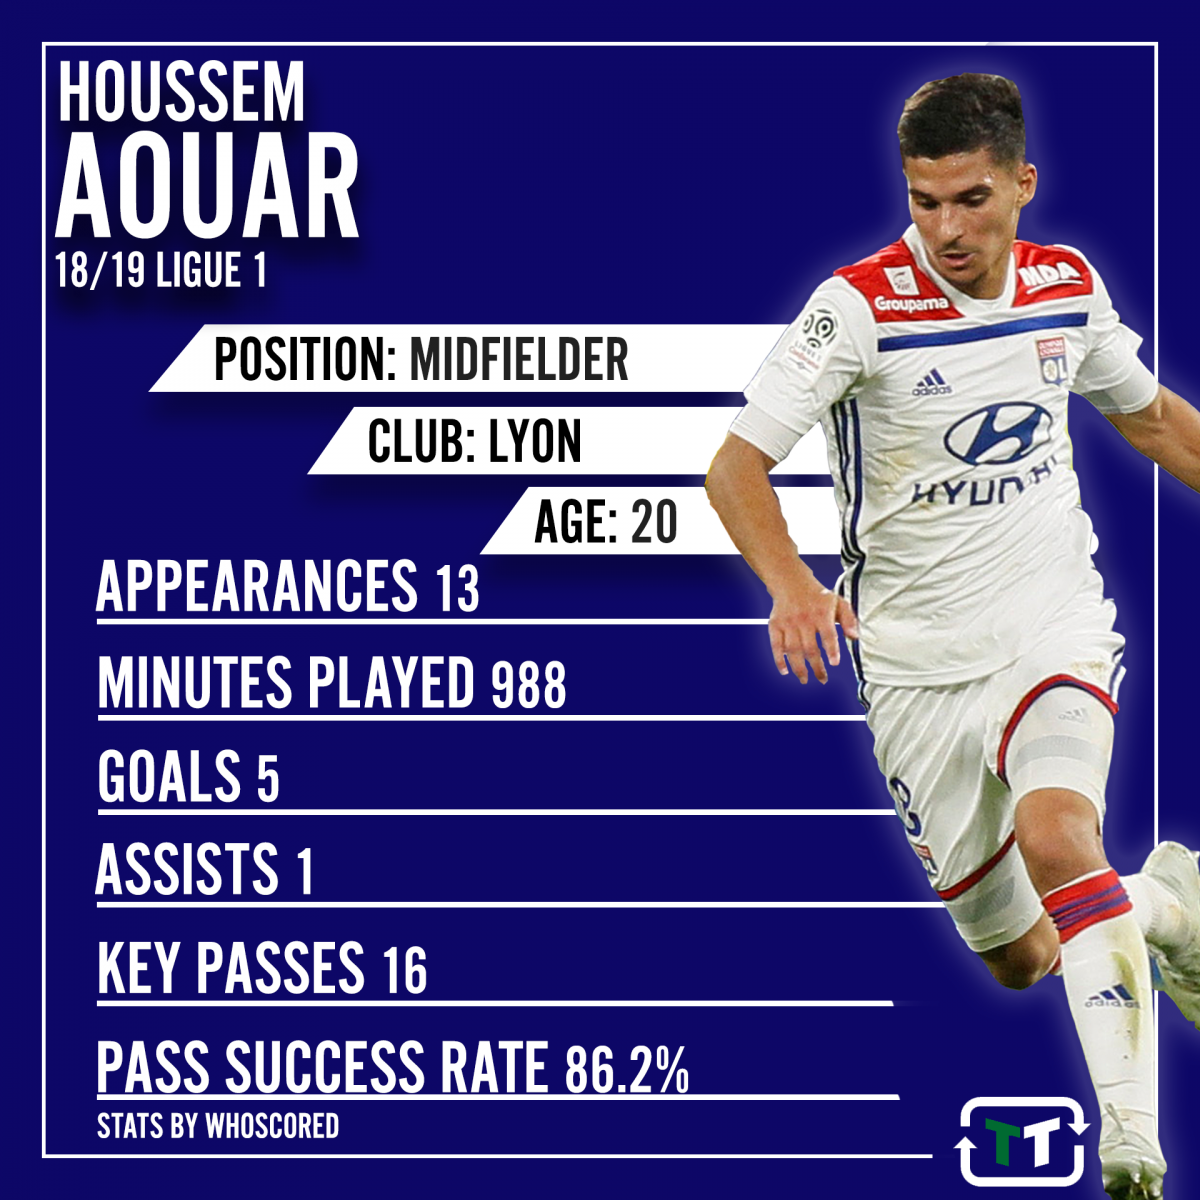 Arsenal fans on Twitter buzzing over links to Lyon's Houssem Aouar